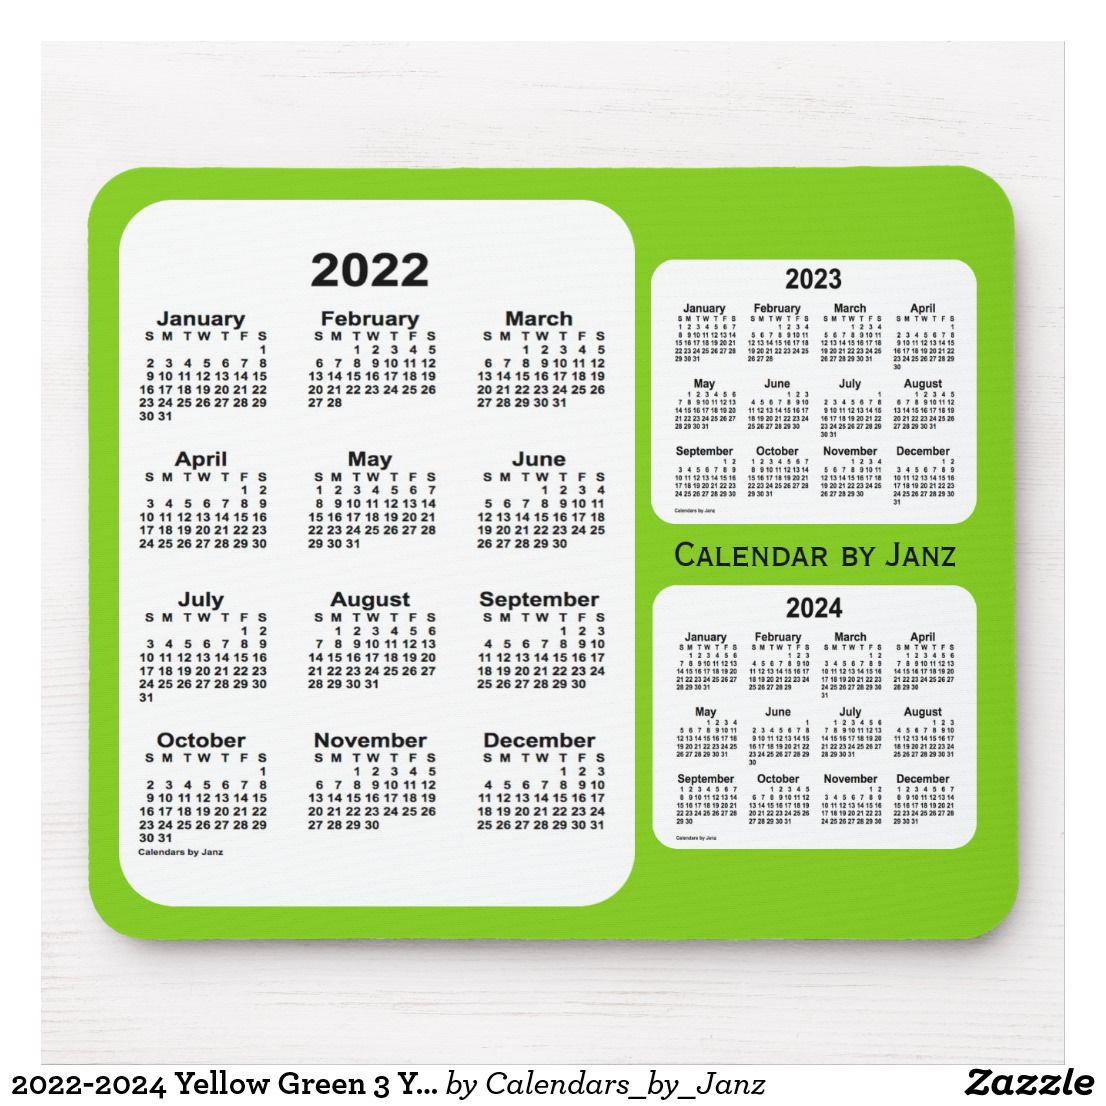 2022 2024 Yellow Green 3 Year Calendar By Janz Mouse Pad Zazzle